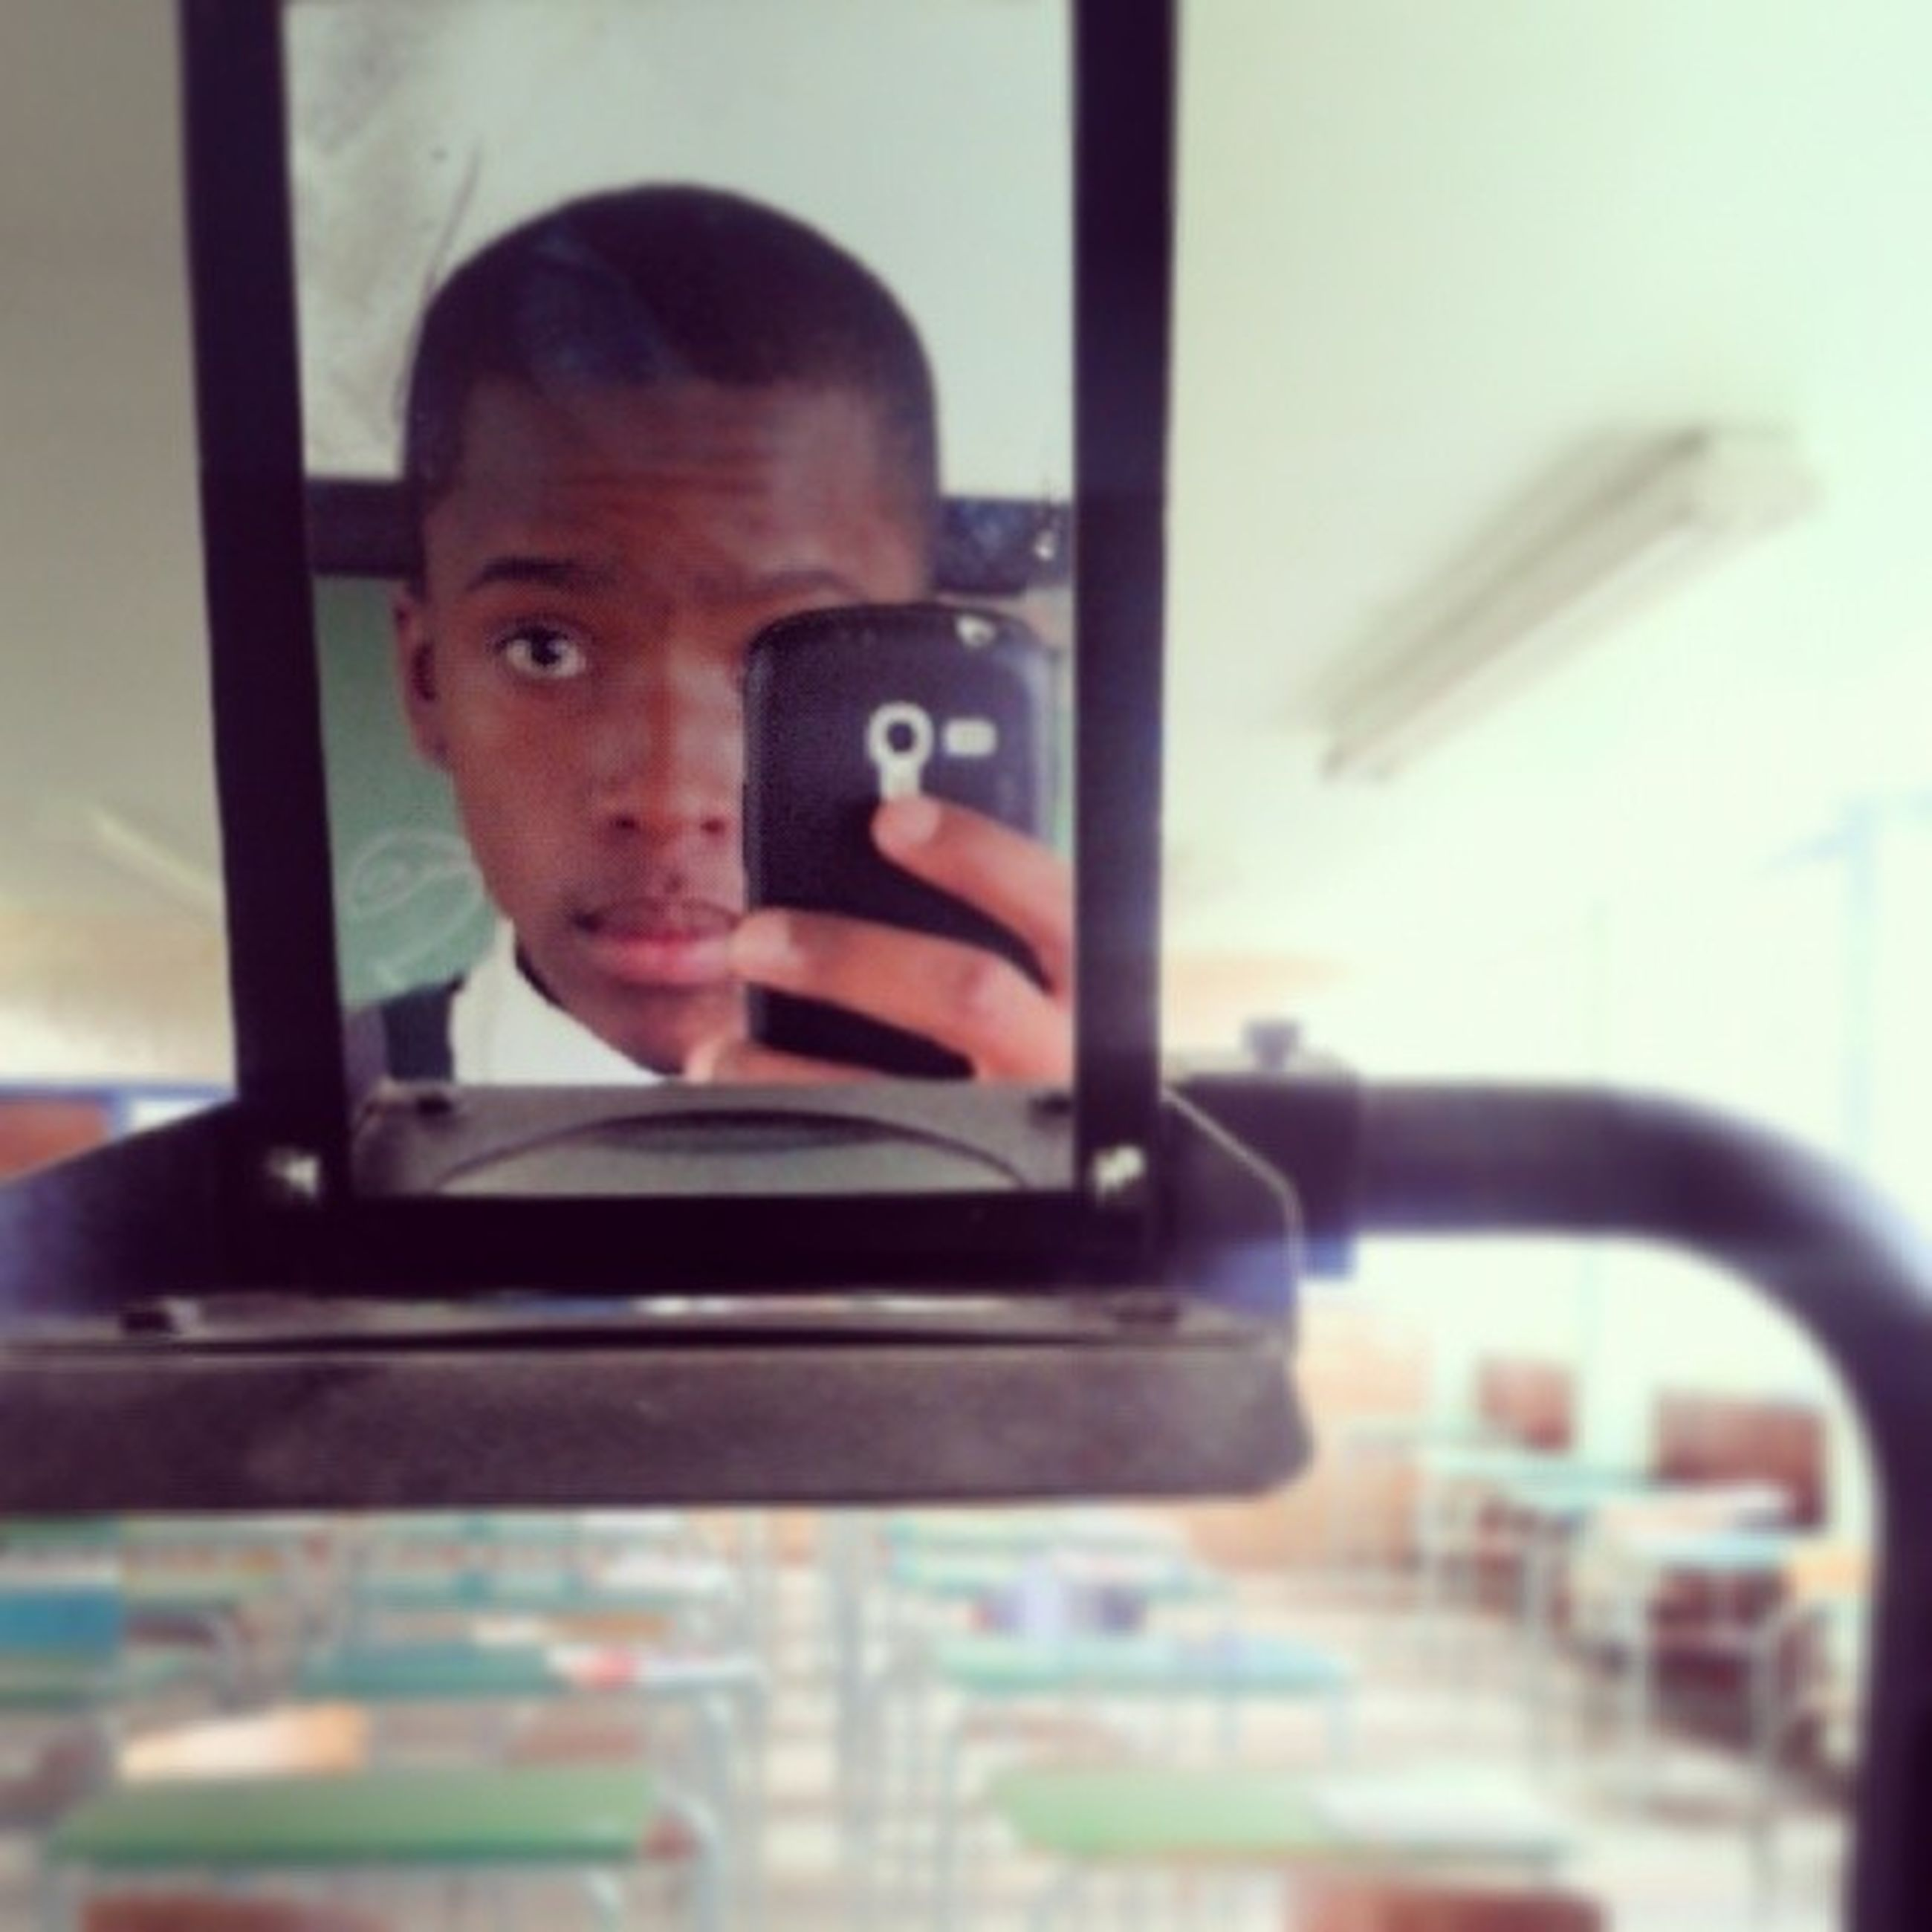 indoors, window, glass - material, person, lifestyles, transparent, sitting, focus on foreground, vehicle interior, leisure activity, headshot, young men, transportation, mode of transport, young adult, holding, reflection, car